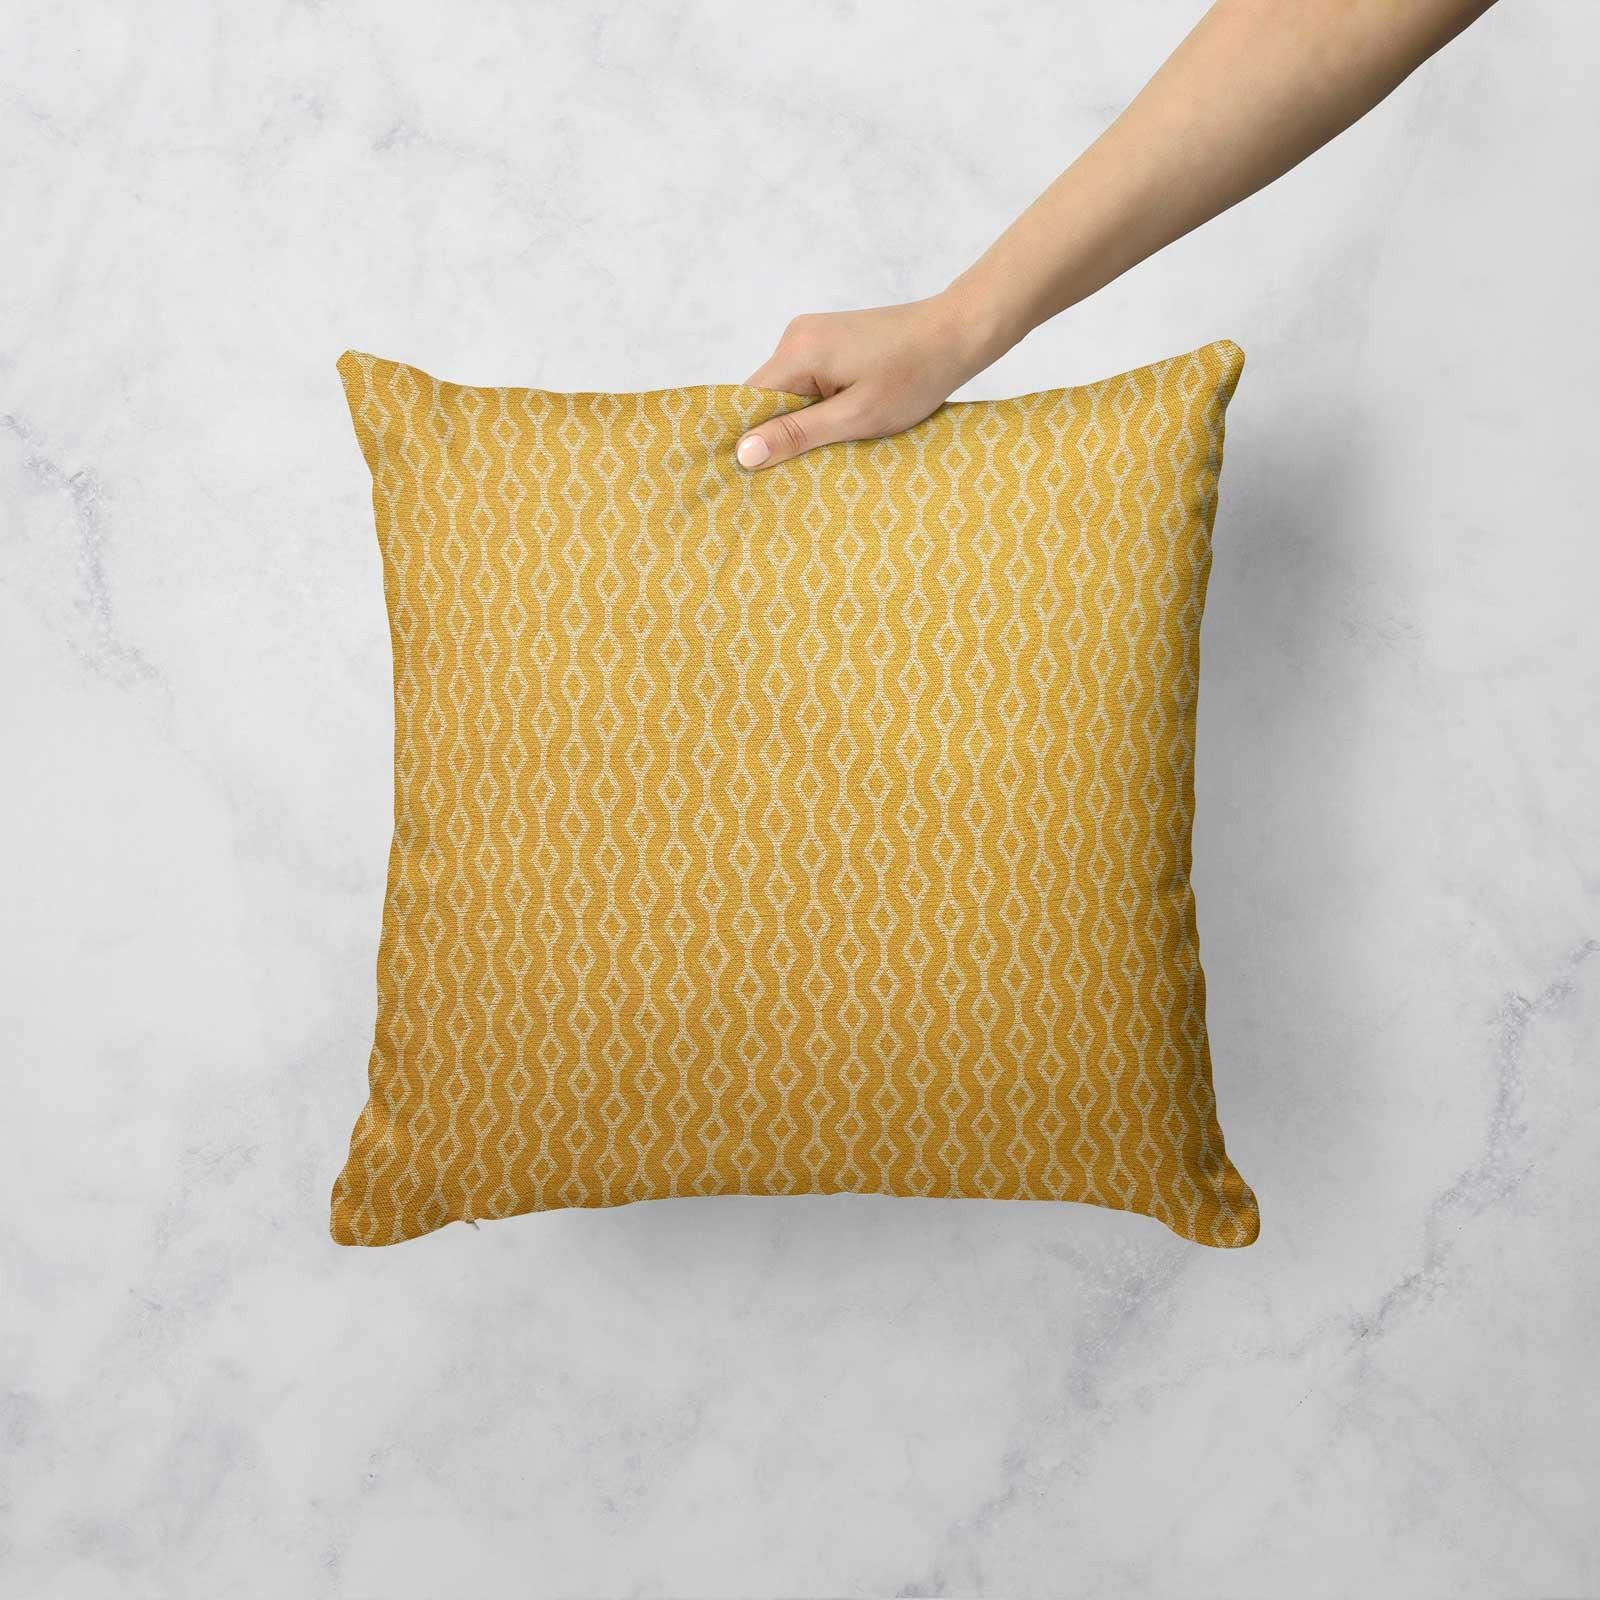 Grey-Ochre-Mustard-Cushion-Cover-Collection-17-034-18-034-Covers-Filled-Cushions thumbnail 90